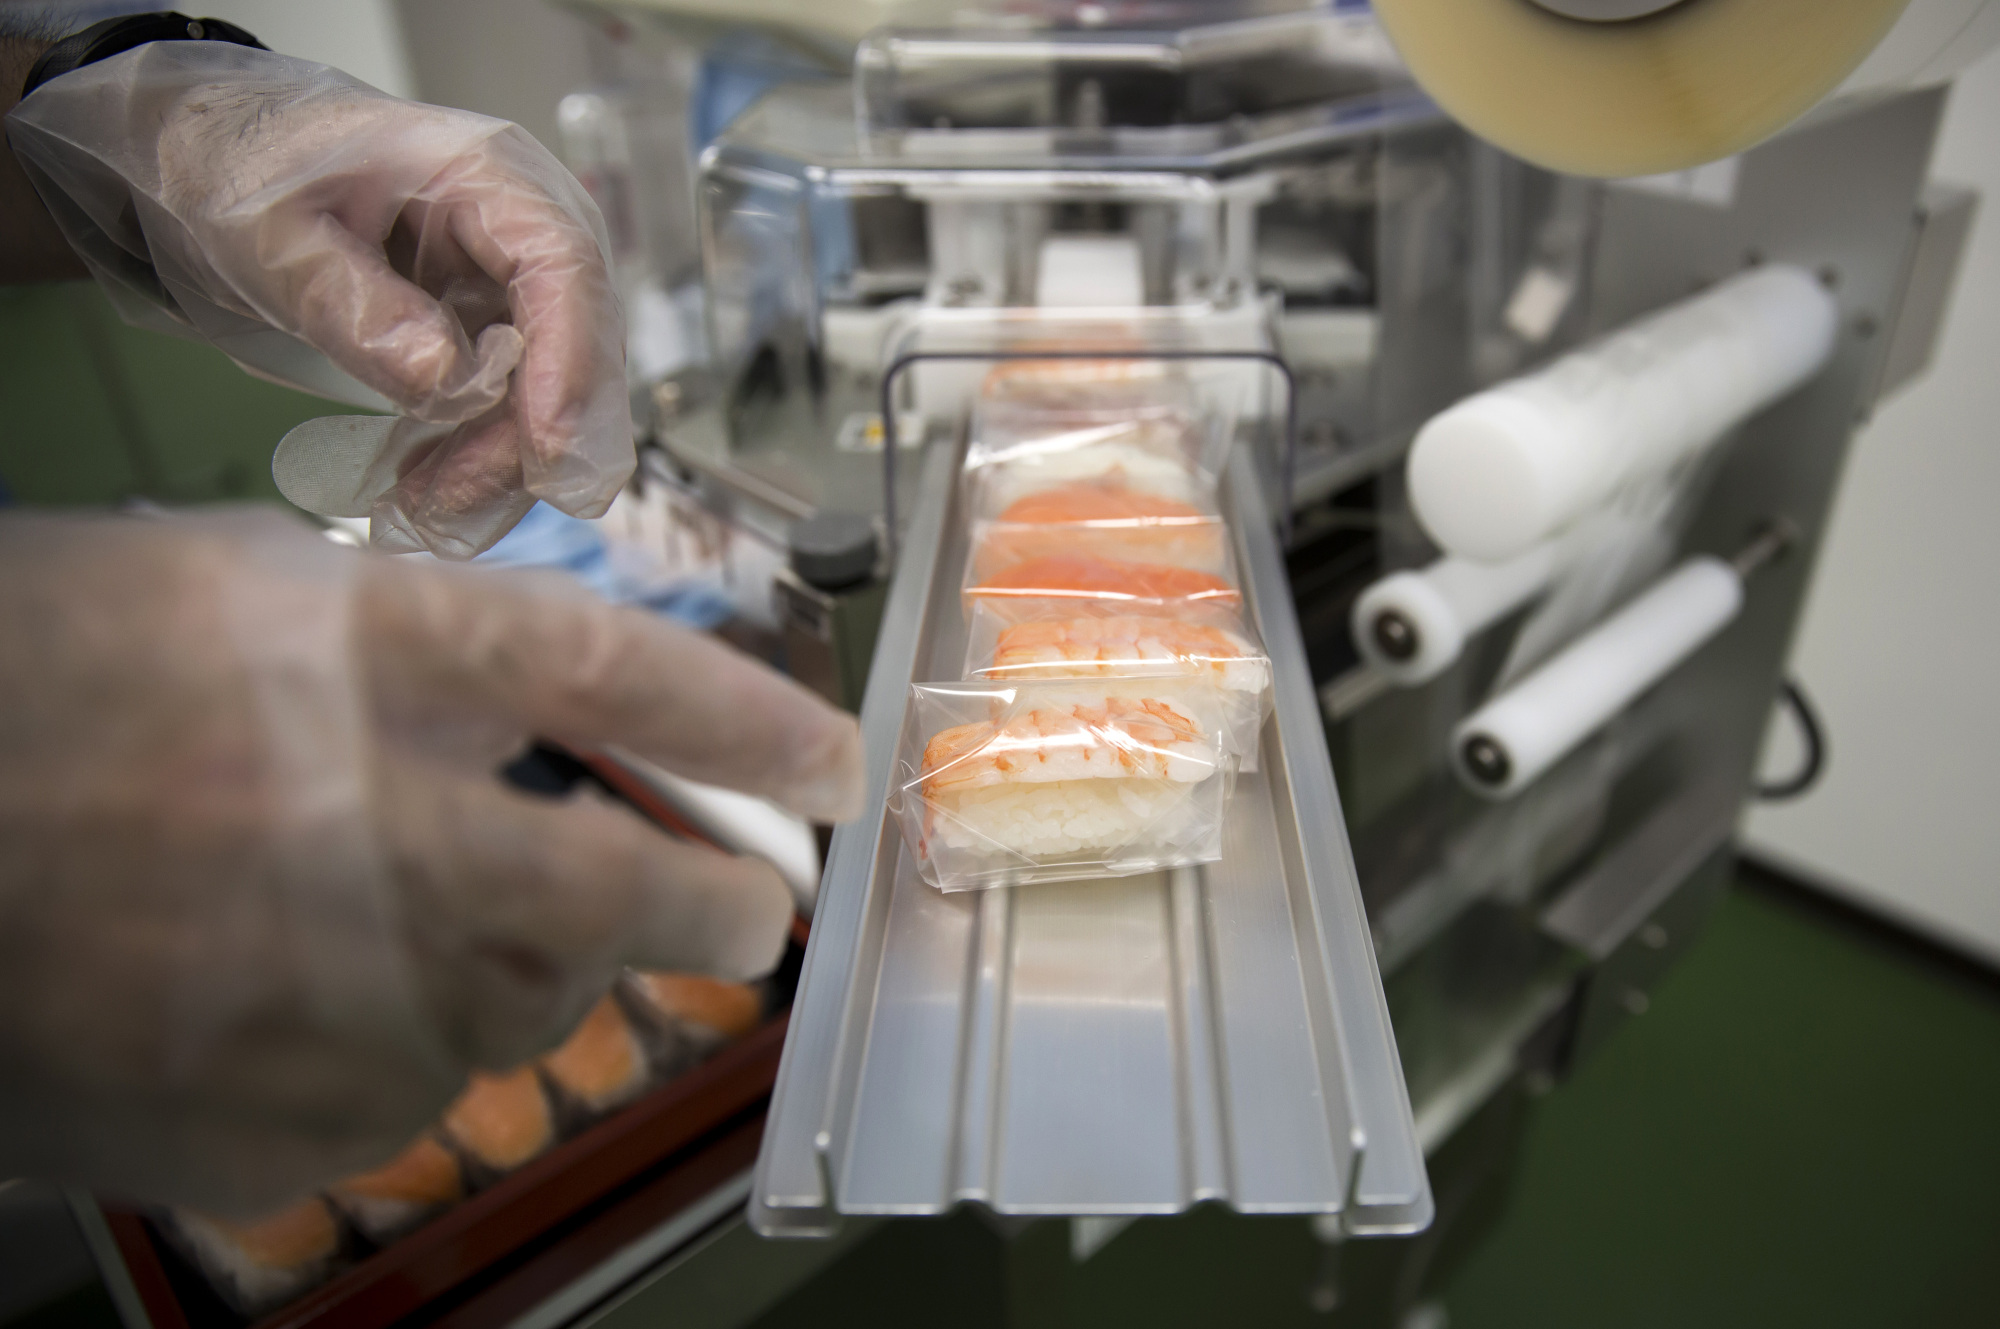 Wrapped pieces of sushi exit a Suzumo Machinery Co. machine during a demonstration at its factory in Kawashima, Saitama Prefecture, on Aug. 7. Suzumo Machinery's robots are used by about 70,000 customers around the world, ranging from sushi chains to factories, and account for about 70 percent of the market for the equipment at restaurants, according to Suzumo's estimates. | BLOOMBERG